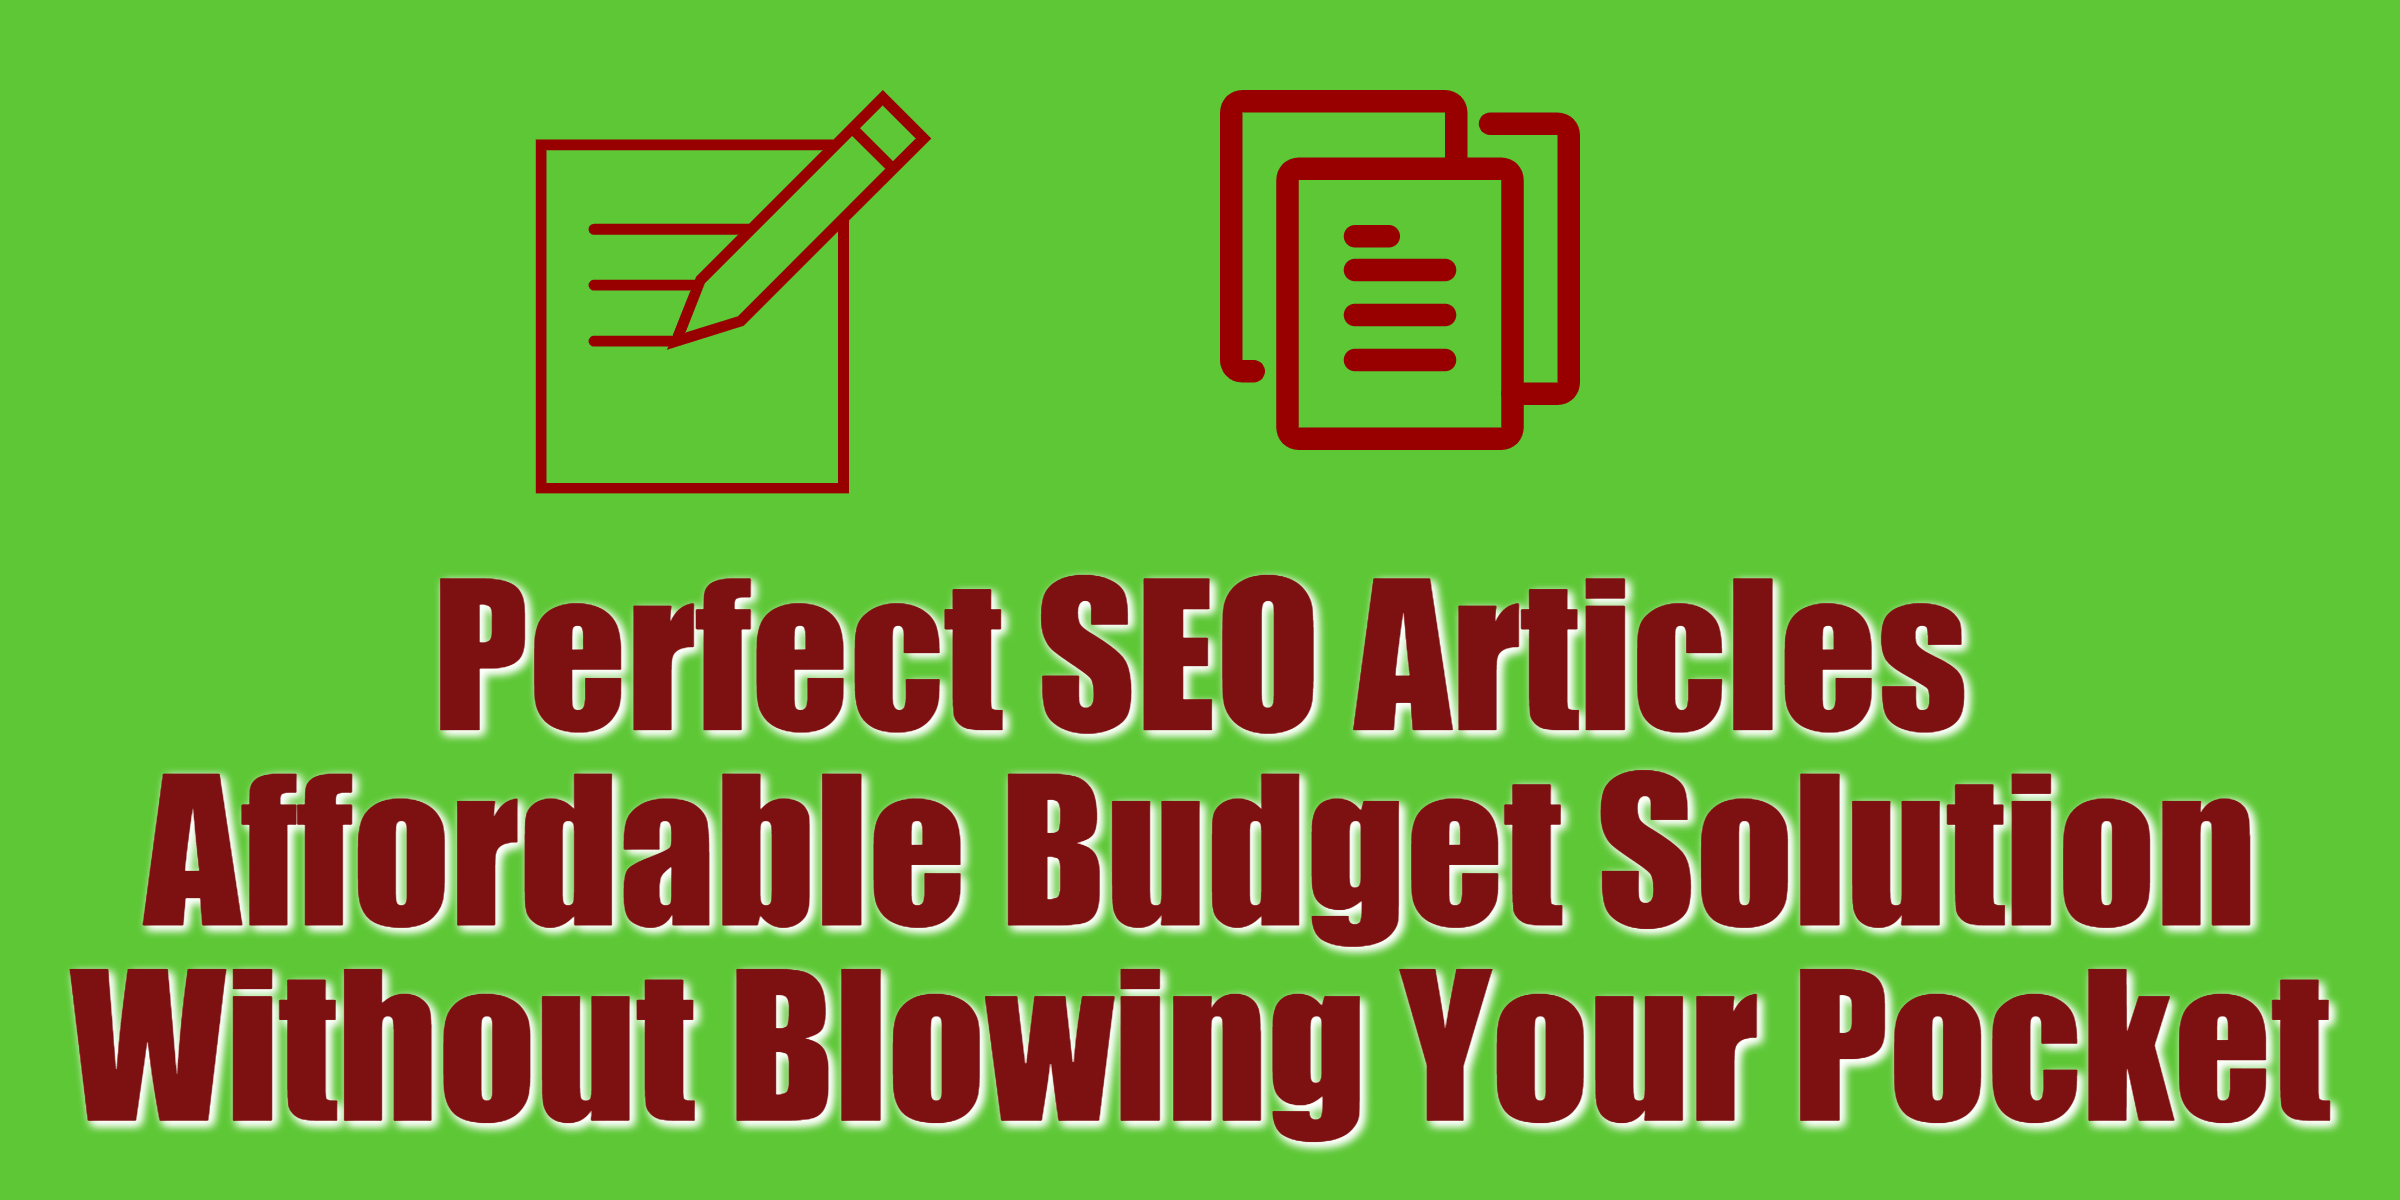 10 Perfect SEO Articles- Affordable Budget Solution Without Blowing Your Pocket